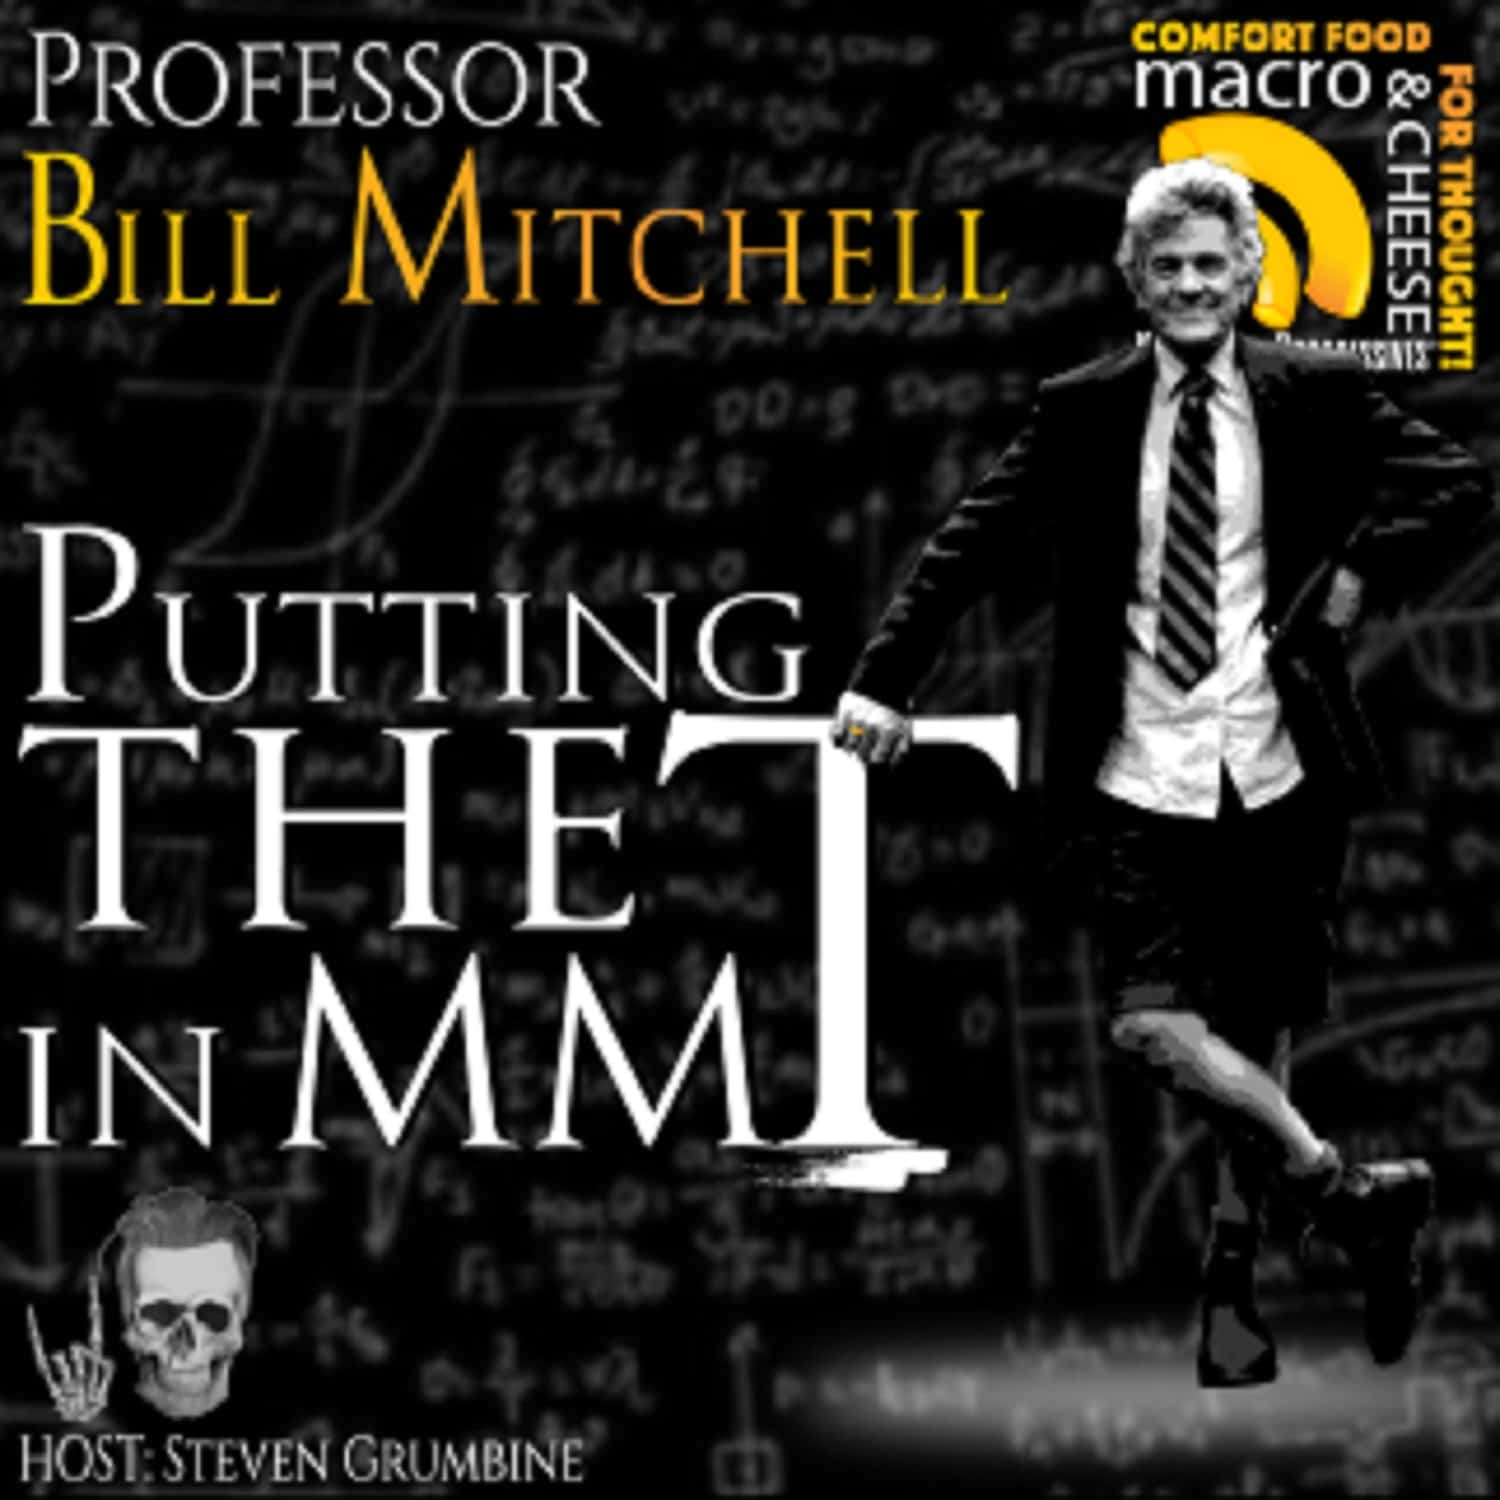 Episode 1 –  Putting the T in MMT with Professor Bill Mitchell